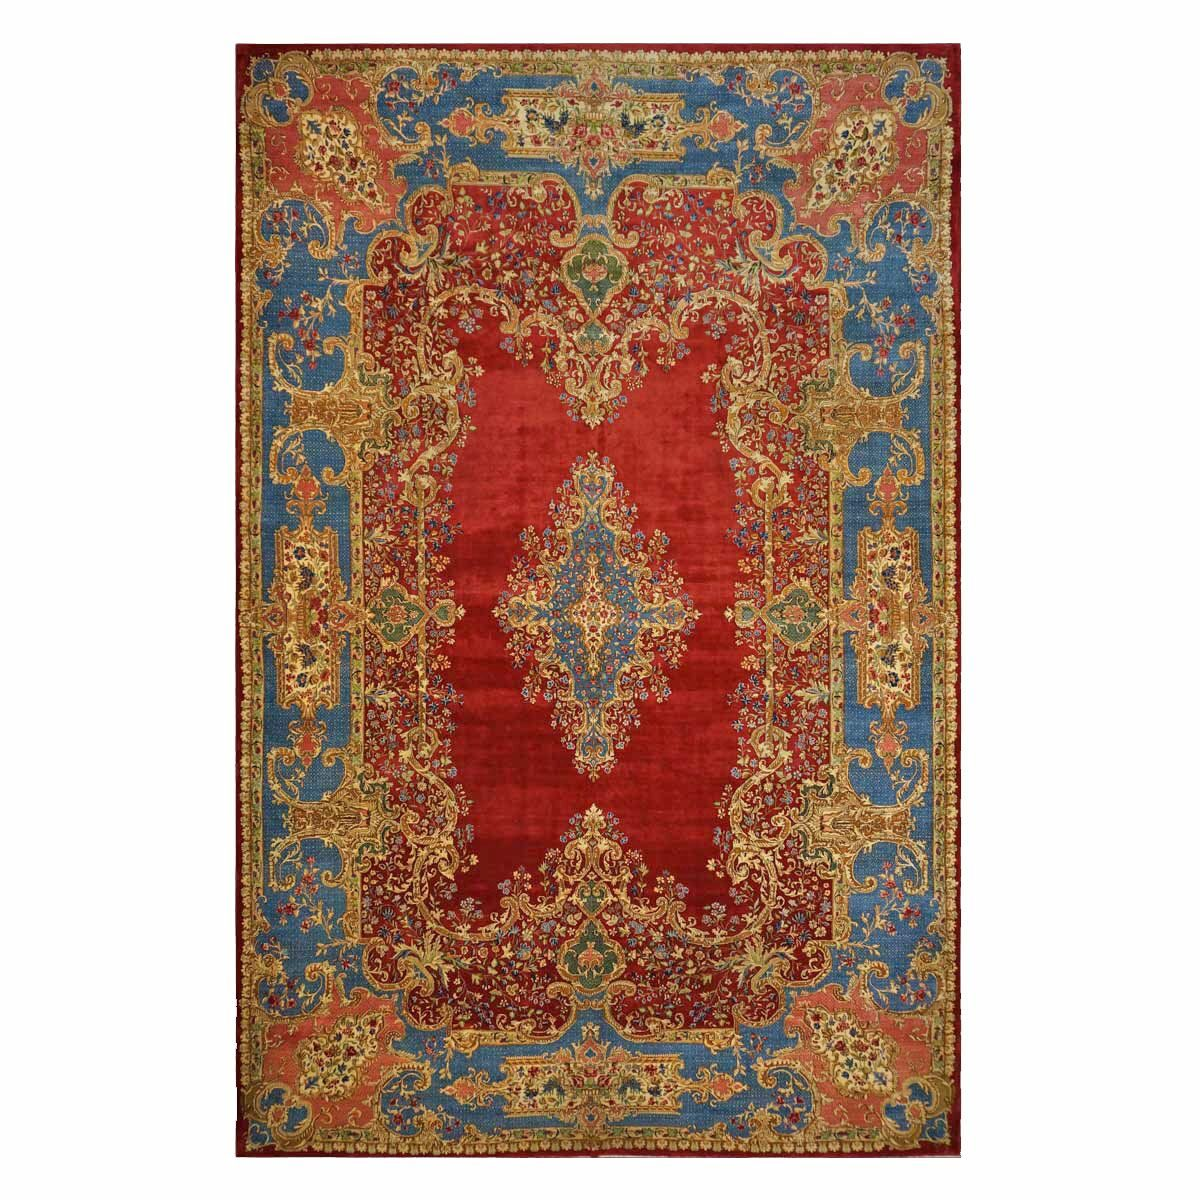 9902258 Antique Persian Kerman Area Rug from Ashly Fine Rugs